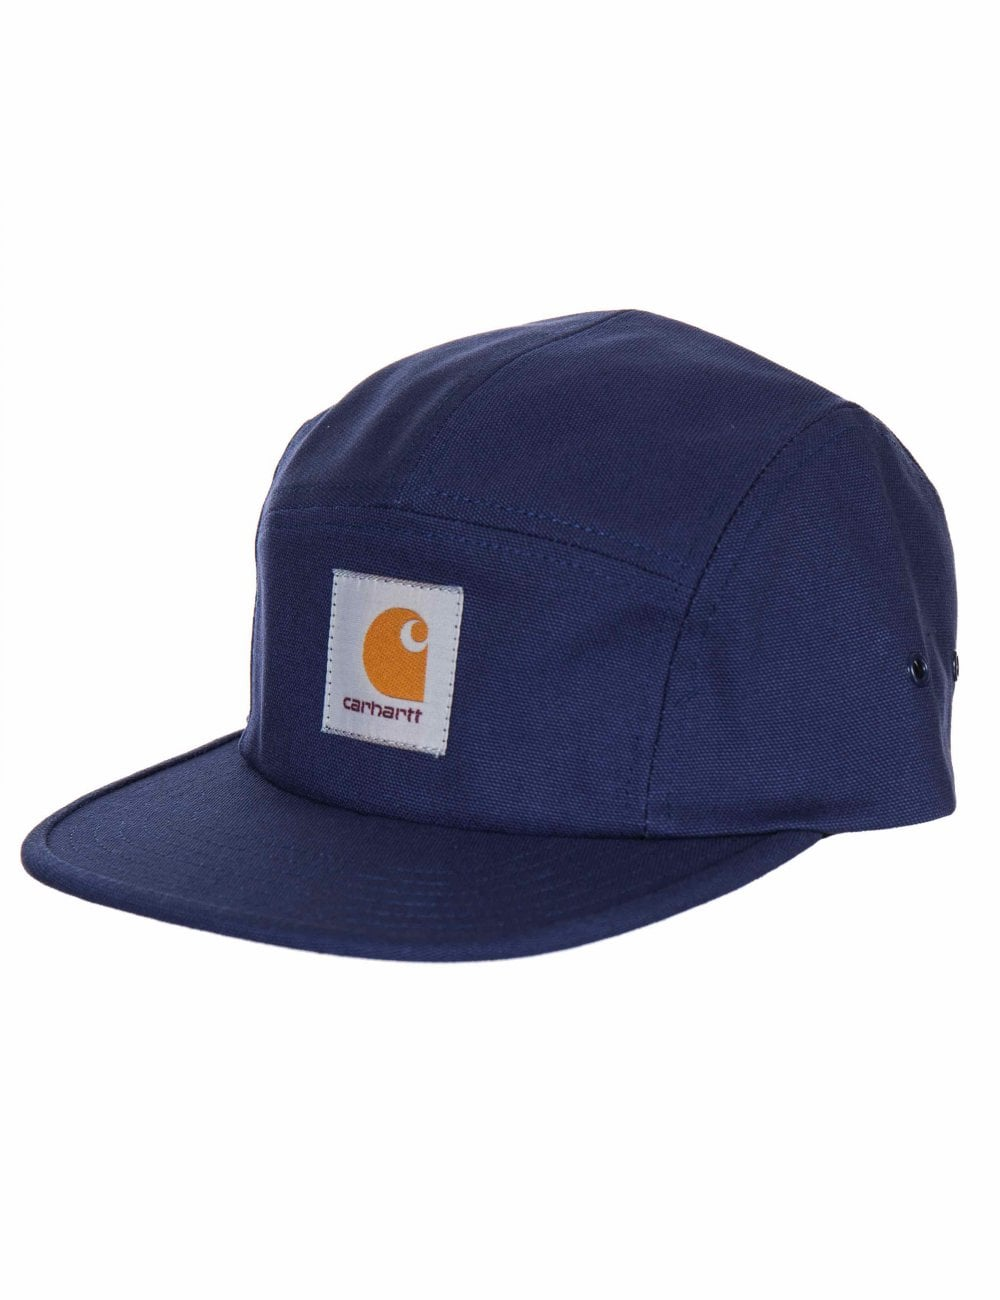 360c128e6d1 Carhartt WIP Backley 5 Panel Hat - Metro Blue - Accessories from Fat ...